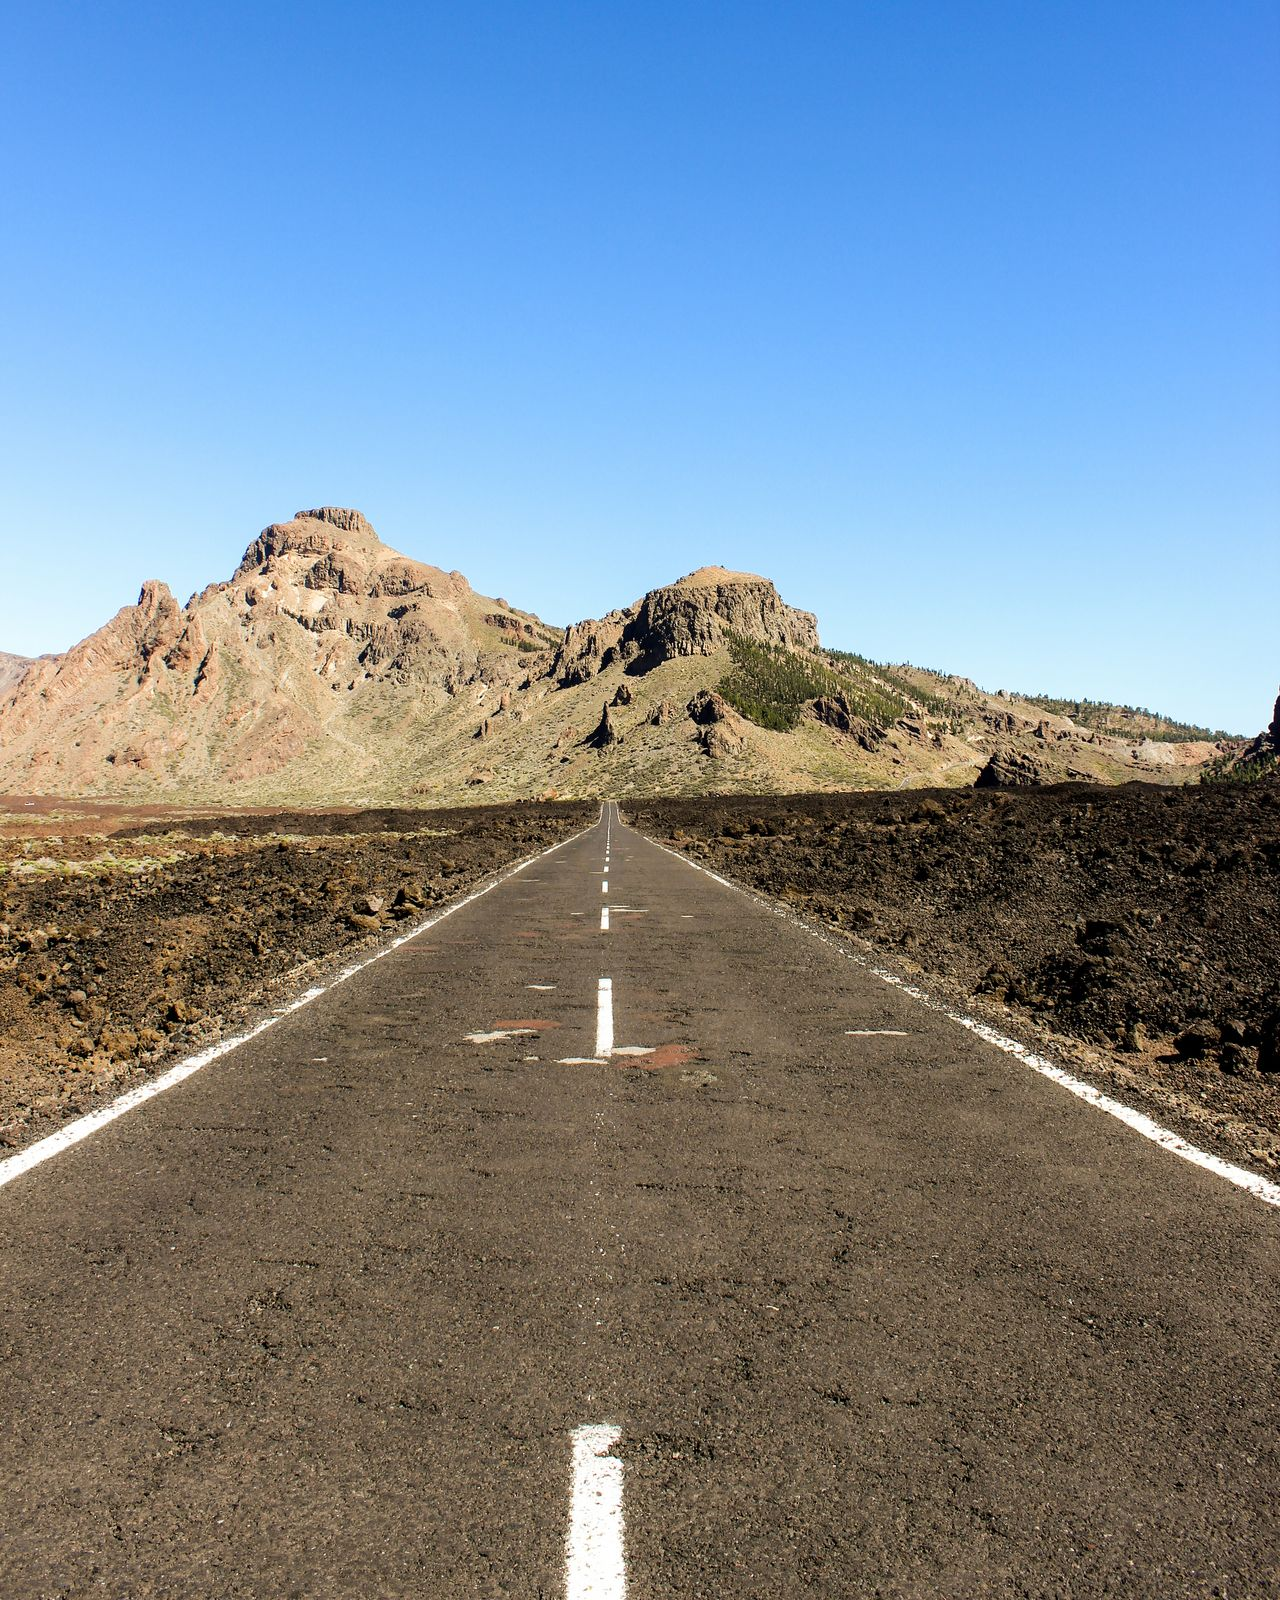 Lonely Road Road Lonelyroad Tenerife Tenerife Island Teneriffa Canadas Del Teide Beauty In Nature Beautiful Nature Beautiful Places Nationalpark Canaryislands Awesomeearth Awesome_nature_shots Wonderful_places Clear Sky Highway Asphalt Transportation The Way Forward Landscape No People Outdoors Day Motorsport